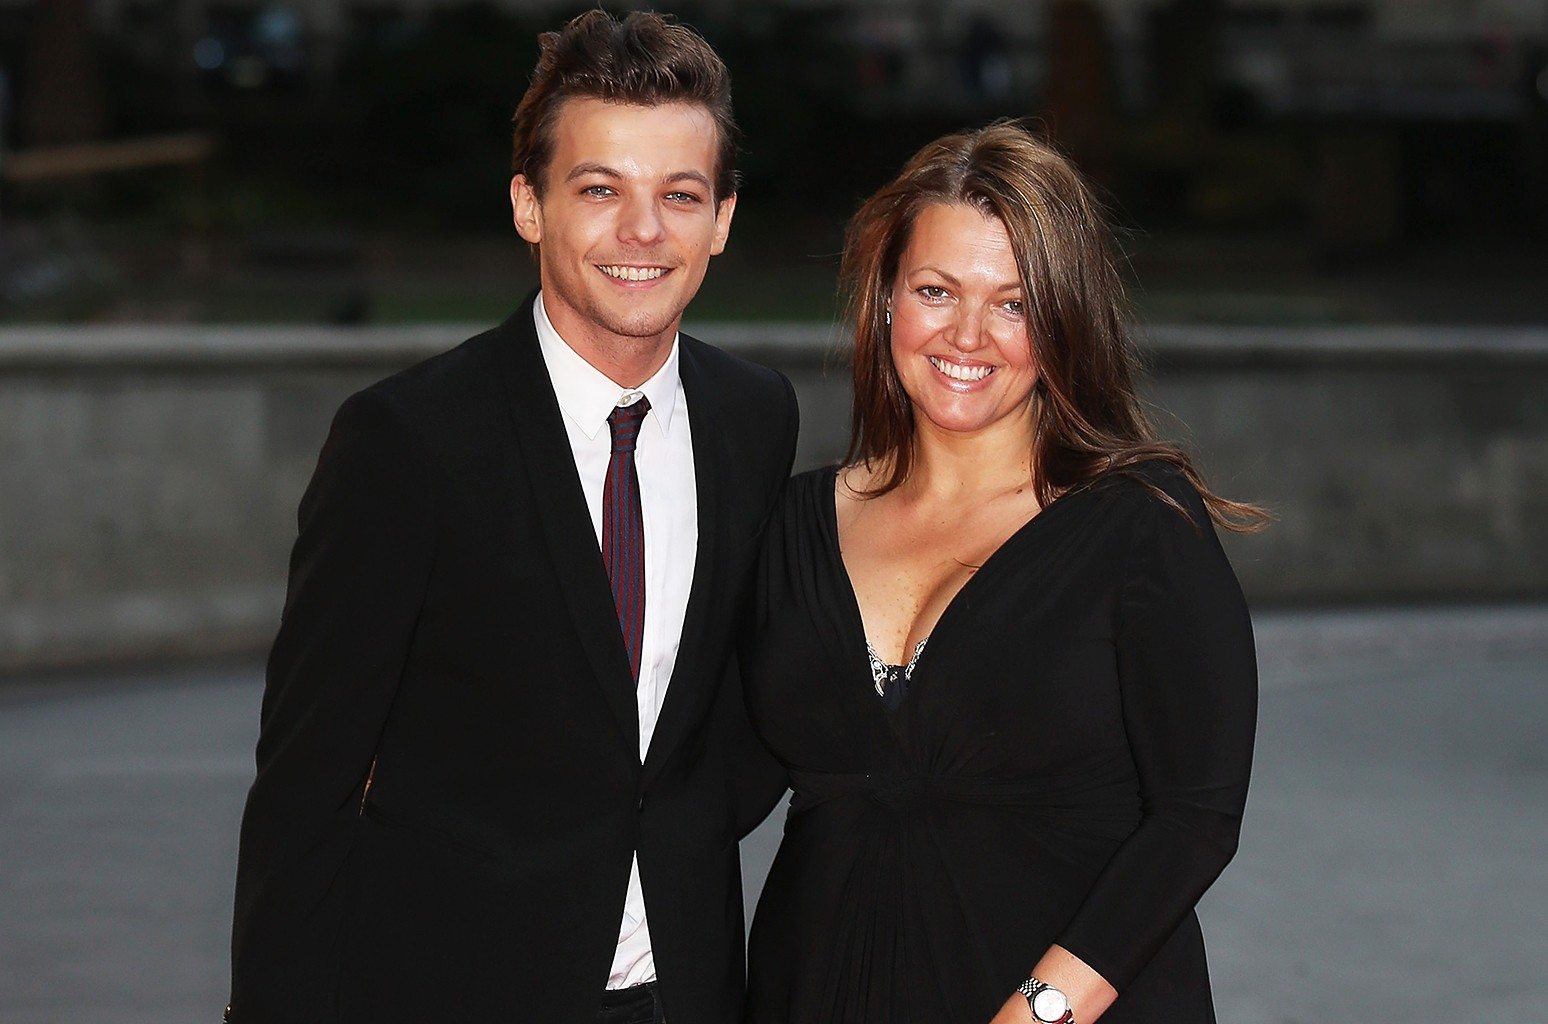 Louis Tomlinson and his mother Johannah Poulston